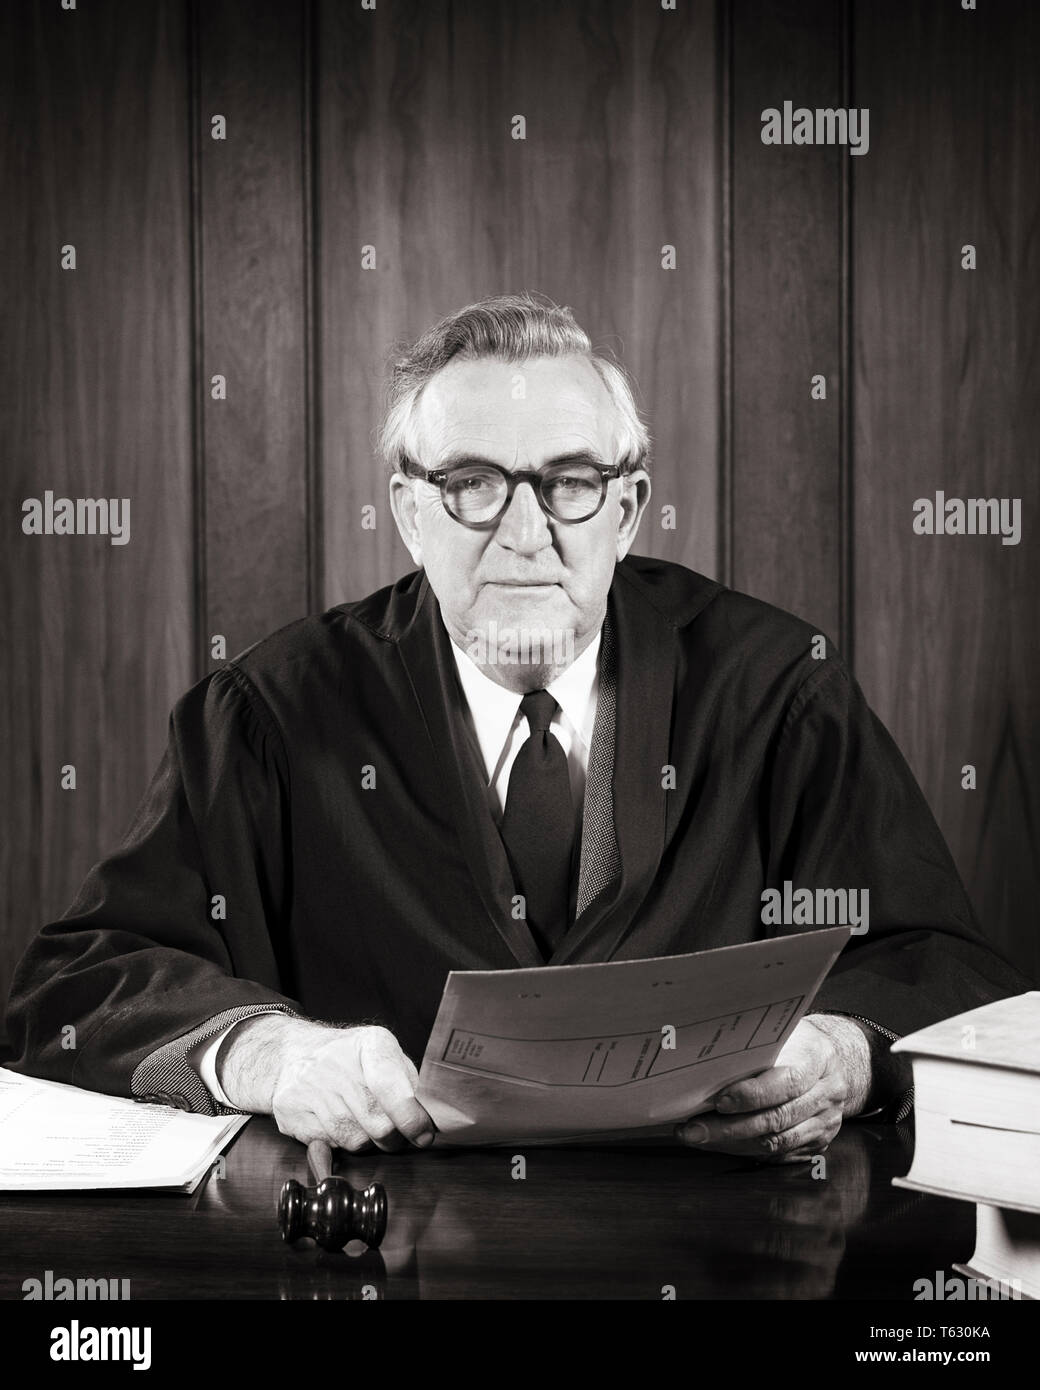 1940s 1950s SERIOUS MAN JUDGE SEATED WEARING ROBE WITH GAVEL AT HAND HOLDING PAPERS  LOOKING AT CAMERA - s7404 HAR001 HARS COMMUNICATION GAVEL LIFESTYLE ELDER JOBS ROBE COPY SPACE HALF-LENGTH PERSONS MALES CONFIDENCE SENIOR MAN SENIOR ADULT EXPRESSIONS MIDDLE-AGED B&W MIDDLE-AGED MAN EYE CONTACT FREEDOM SKILL SUIT AND TIE OCCUPATION SKILLS OLDSTERS OLDSTER ROBES JUDICIAL LAWYERS LEADERSHIP POWERFUL STERN JUDGMENT ATTORNEYS AUTHORITY OCCUPATIONS POLITICS ELDERS CONCEPTUAL ATTORNEY COOPERATION BLACK AND WHITE CAUCASIAN ETHNICITY DIRECT HAR001 OLD FASHIONED - Stock Image